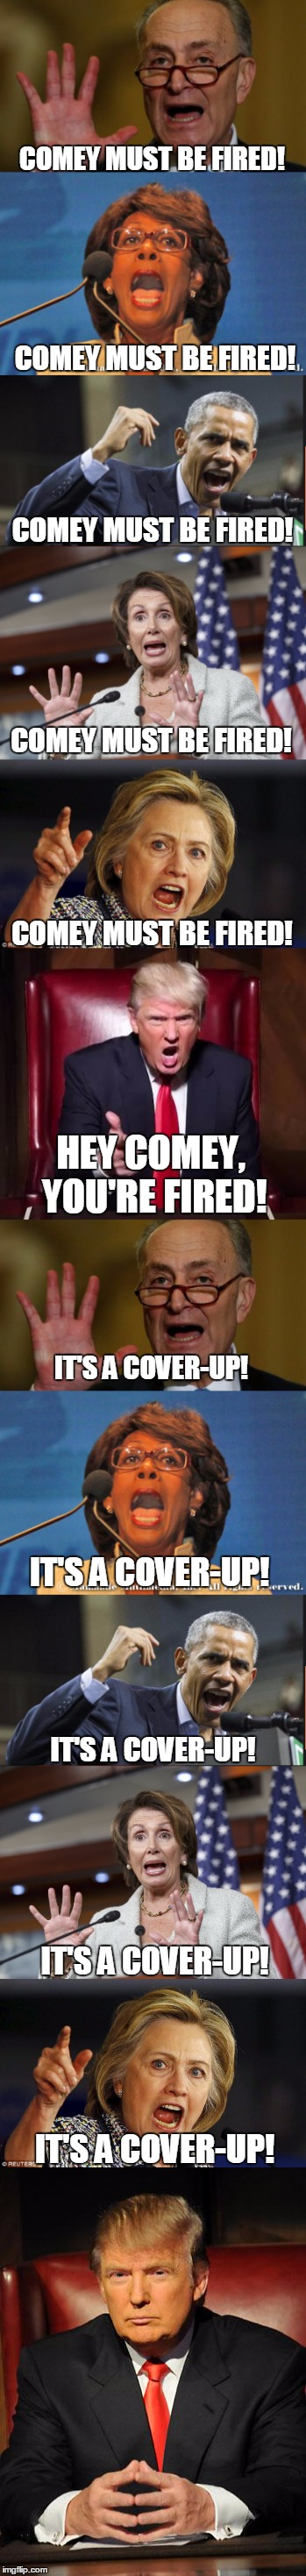 I'd like a refill on my hypocrisy, please. |  COMEY MUST BE FIRED! COMEY MUST BE FIRED! COMEY MUST BE FIRED! COMEY MUST BE FIRED! COMEY MUST BE FIRED! HEY COMEY, YOU'RE FIRED! IT'S A COVER-UP! IT'S A COVER-UP! IT'S A COVER-UP! IT'S A COVER-UP! IT'S A COVER-UP! | image tagged in donald trump,james comey,liberal hypocrisy,hillary clinton,democrats,liars | made w/ Imgflip meme maker